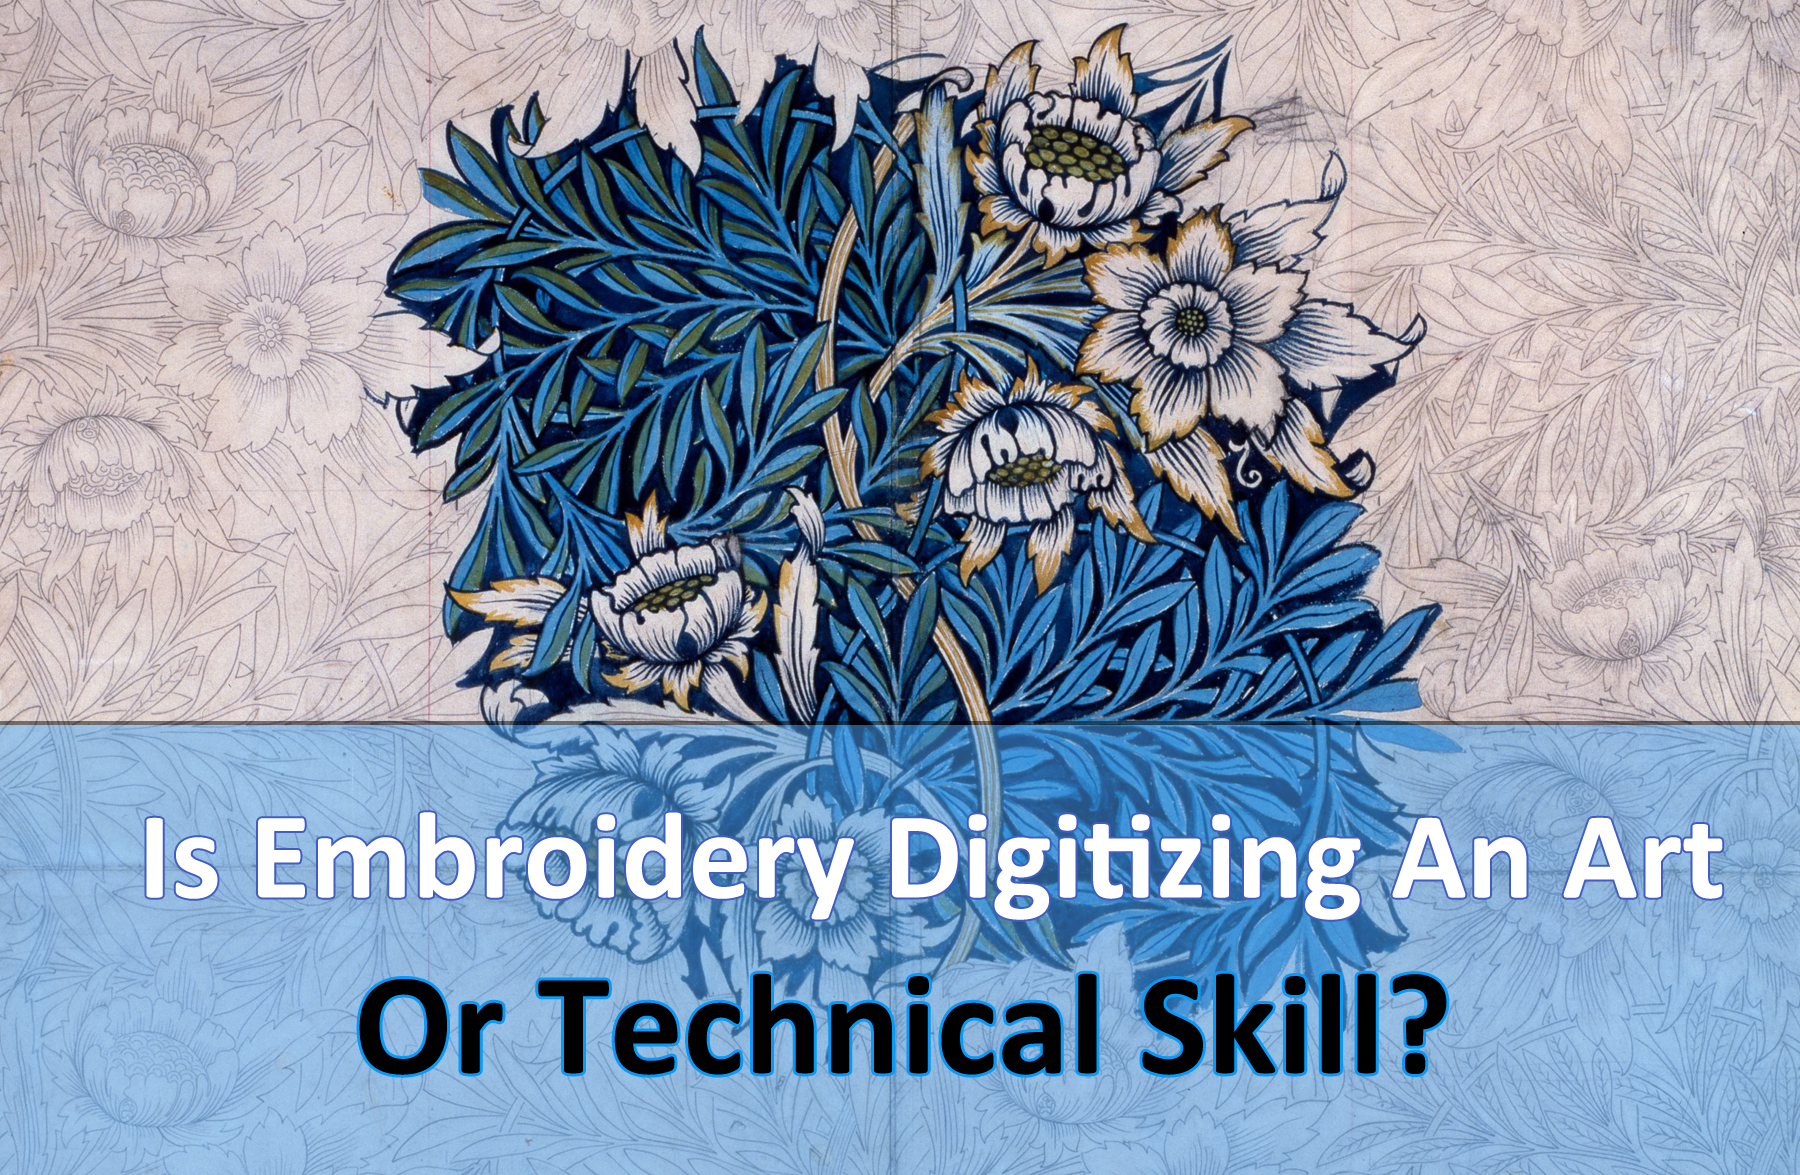 <p> Is Embroidery Digitizing An Art Or Technical Skill?</p>